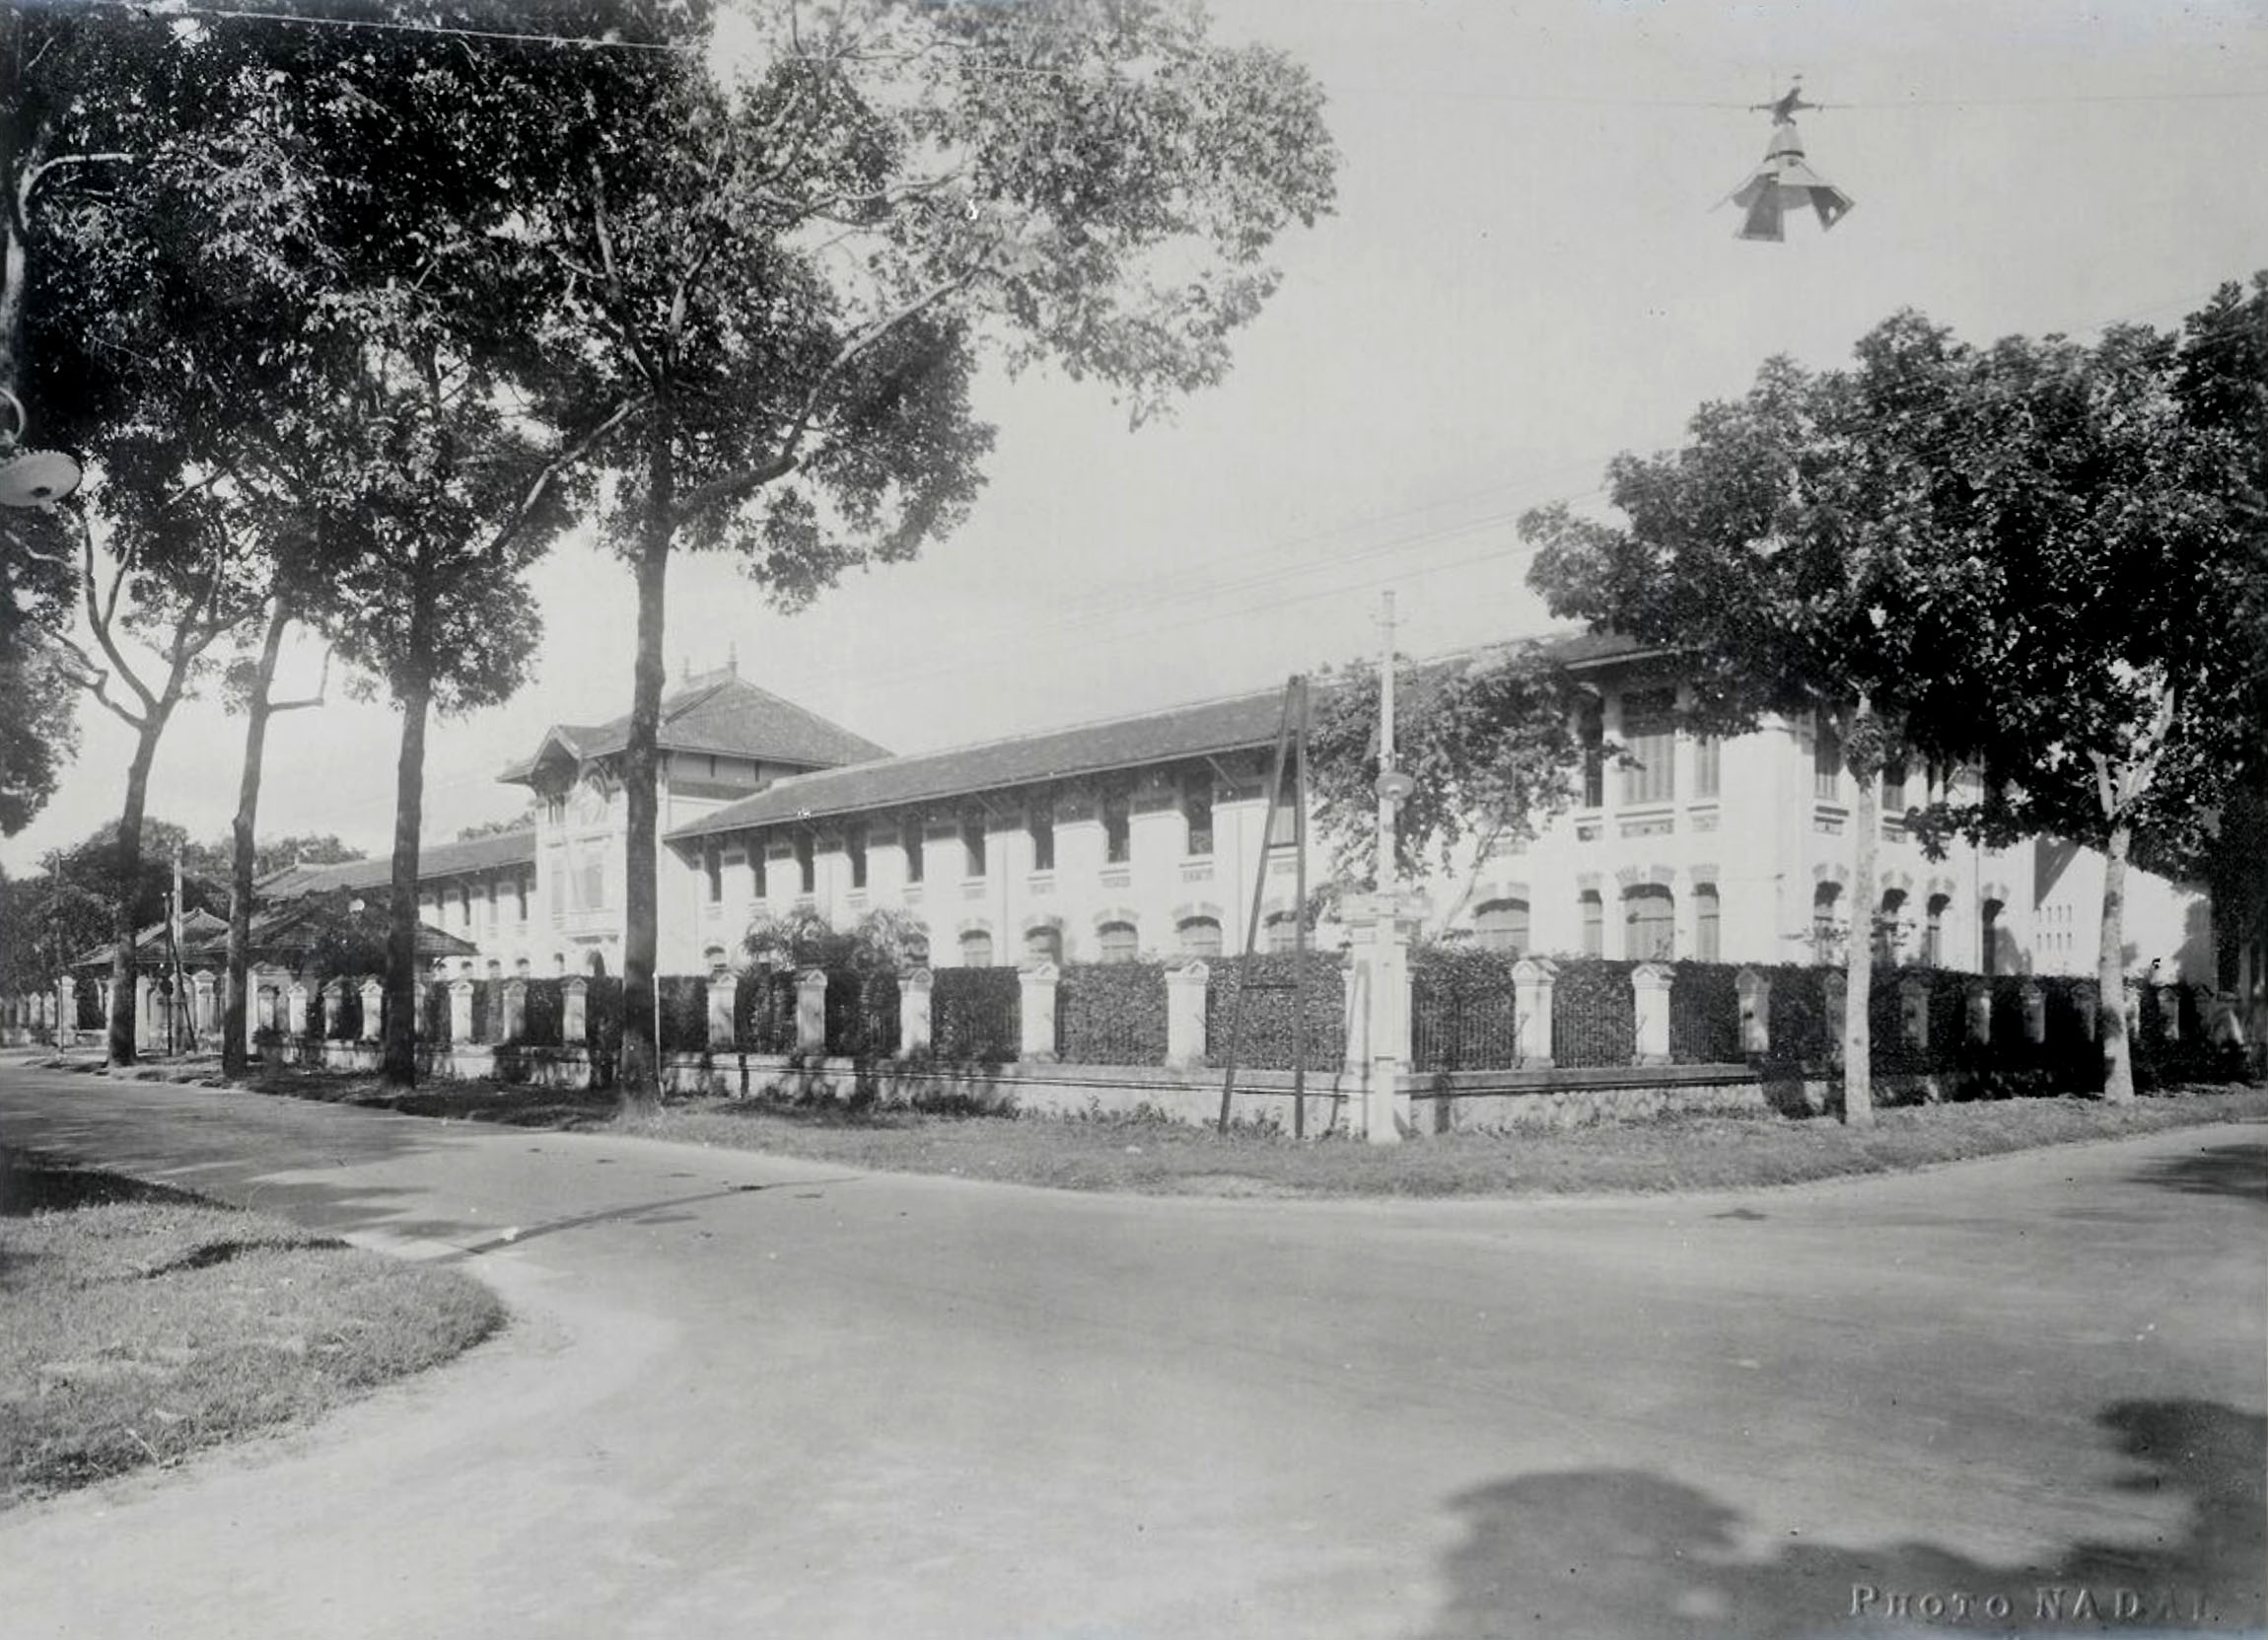 Loat anh doc ve cac truong hoc o Sai Gon thap nien 1920-Hinh-10